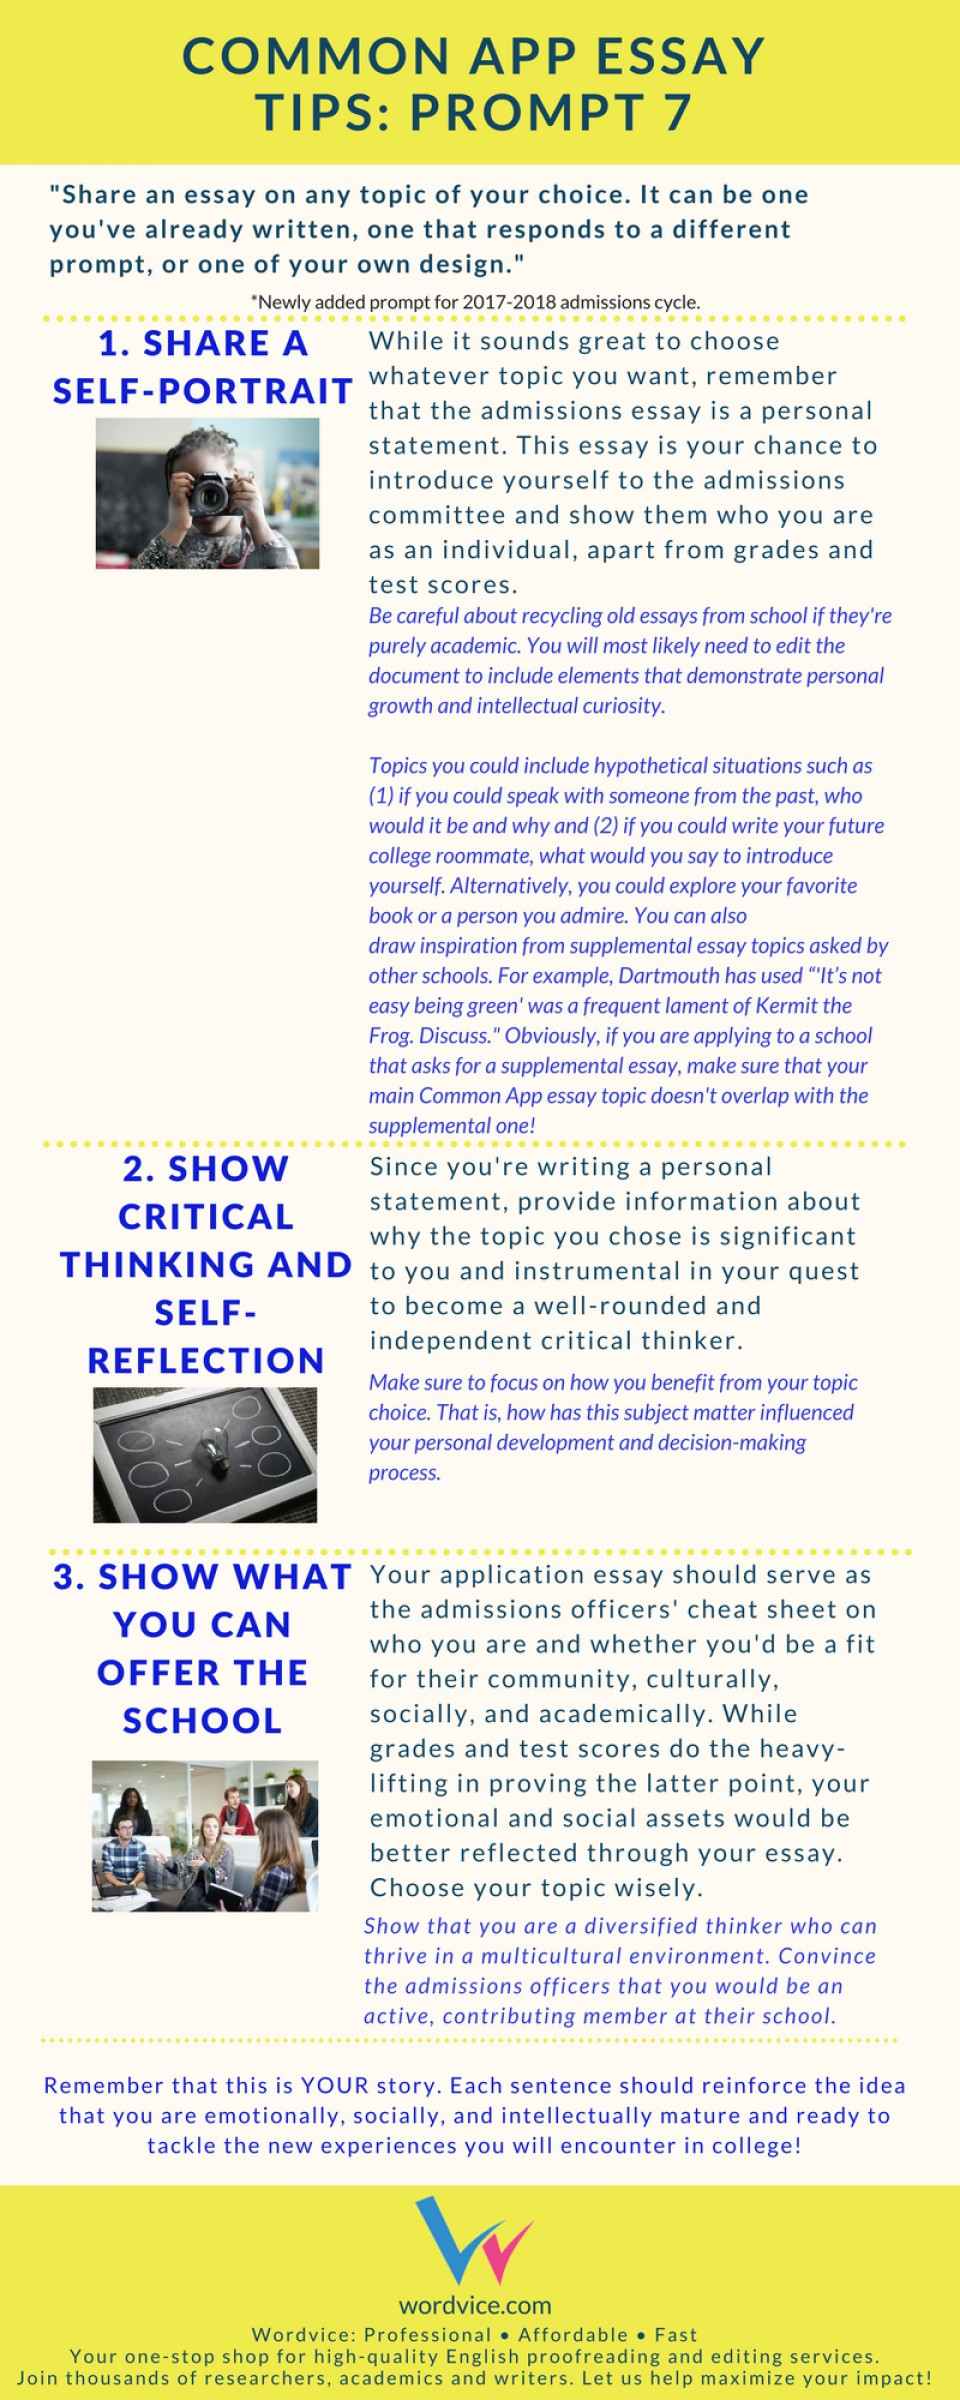 010 Common Application Essay Prompts Example App Brainstormprompt Best 2017 2017-18 A Guide 960